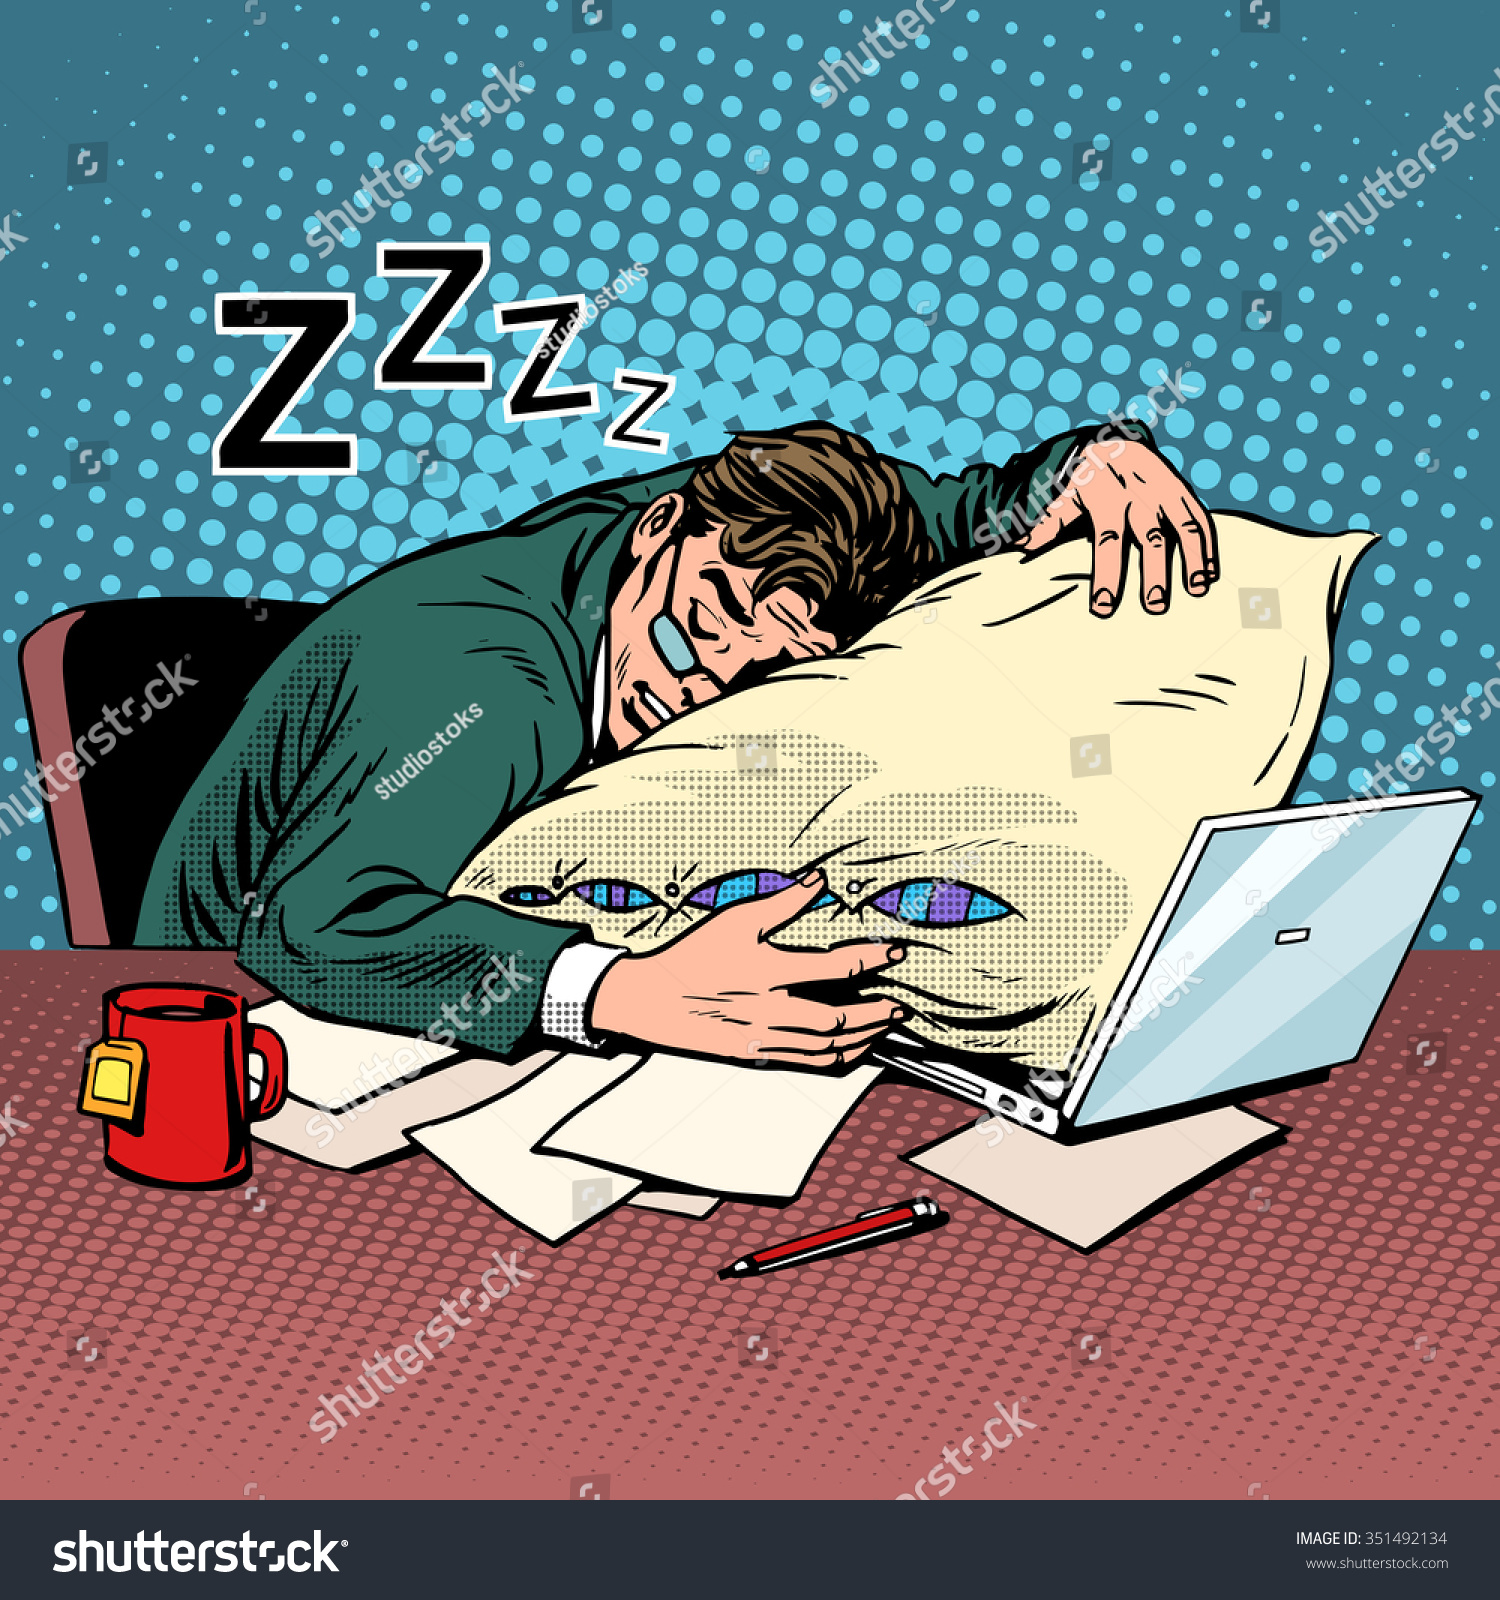 worker dream workplace fatigue processing pop stock vector worker dream workplace fatigue processing pop art retro style evening night good worker